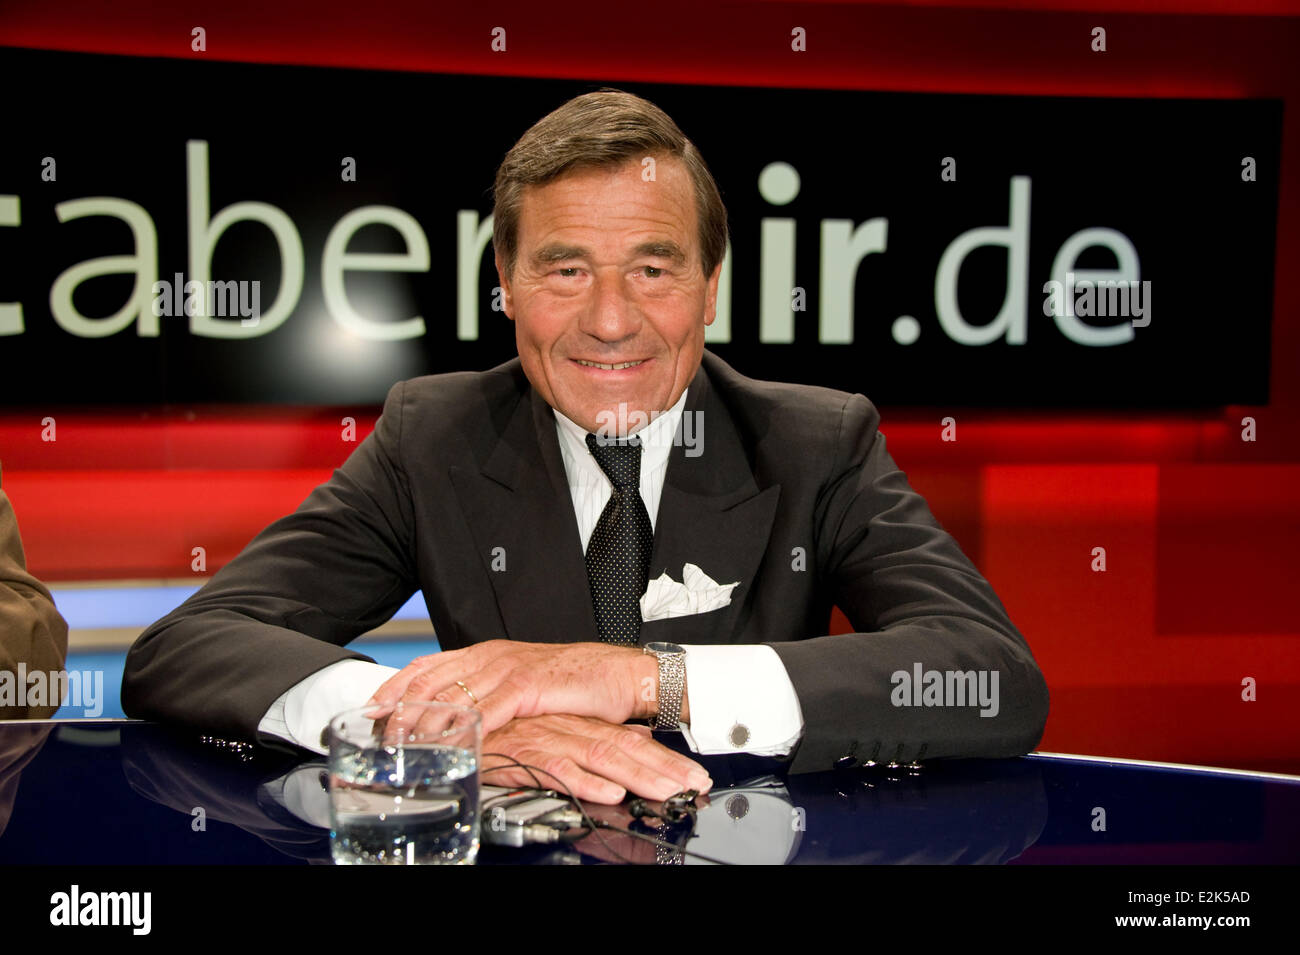 Wolfgang Grupp on German ARD TV show Hart aber fair at WDR Studios.  Where: Cologne, Germany When: 29 Apr 2013 - Stock Image